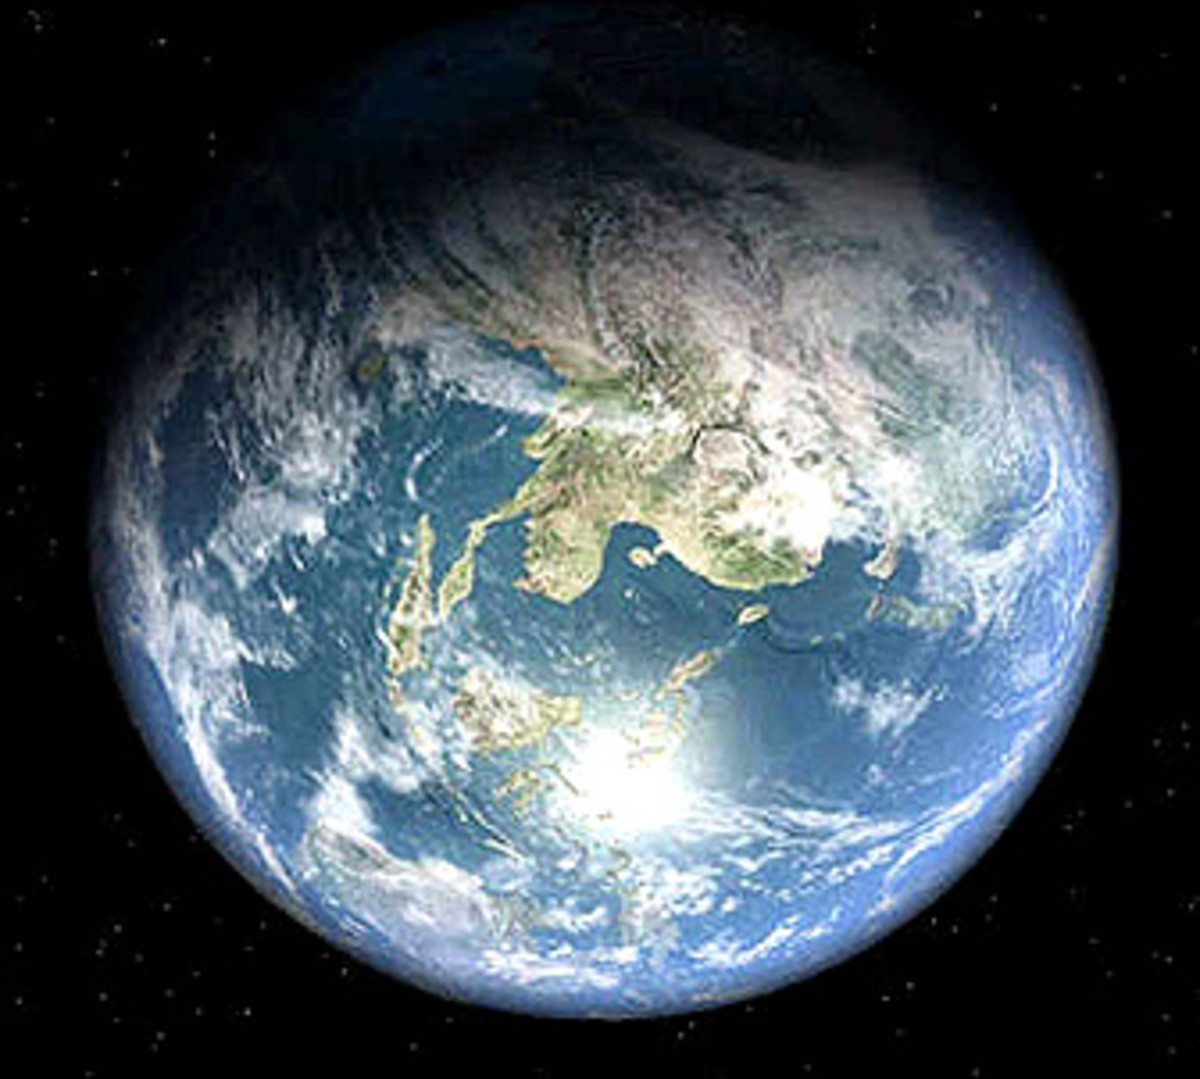 Earth, as seen from the moon.